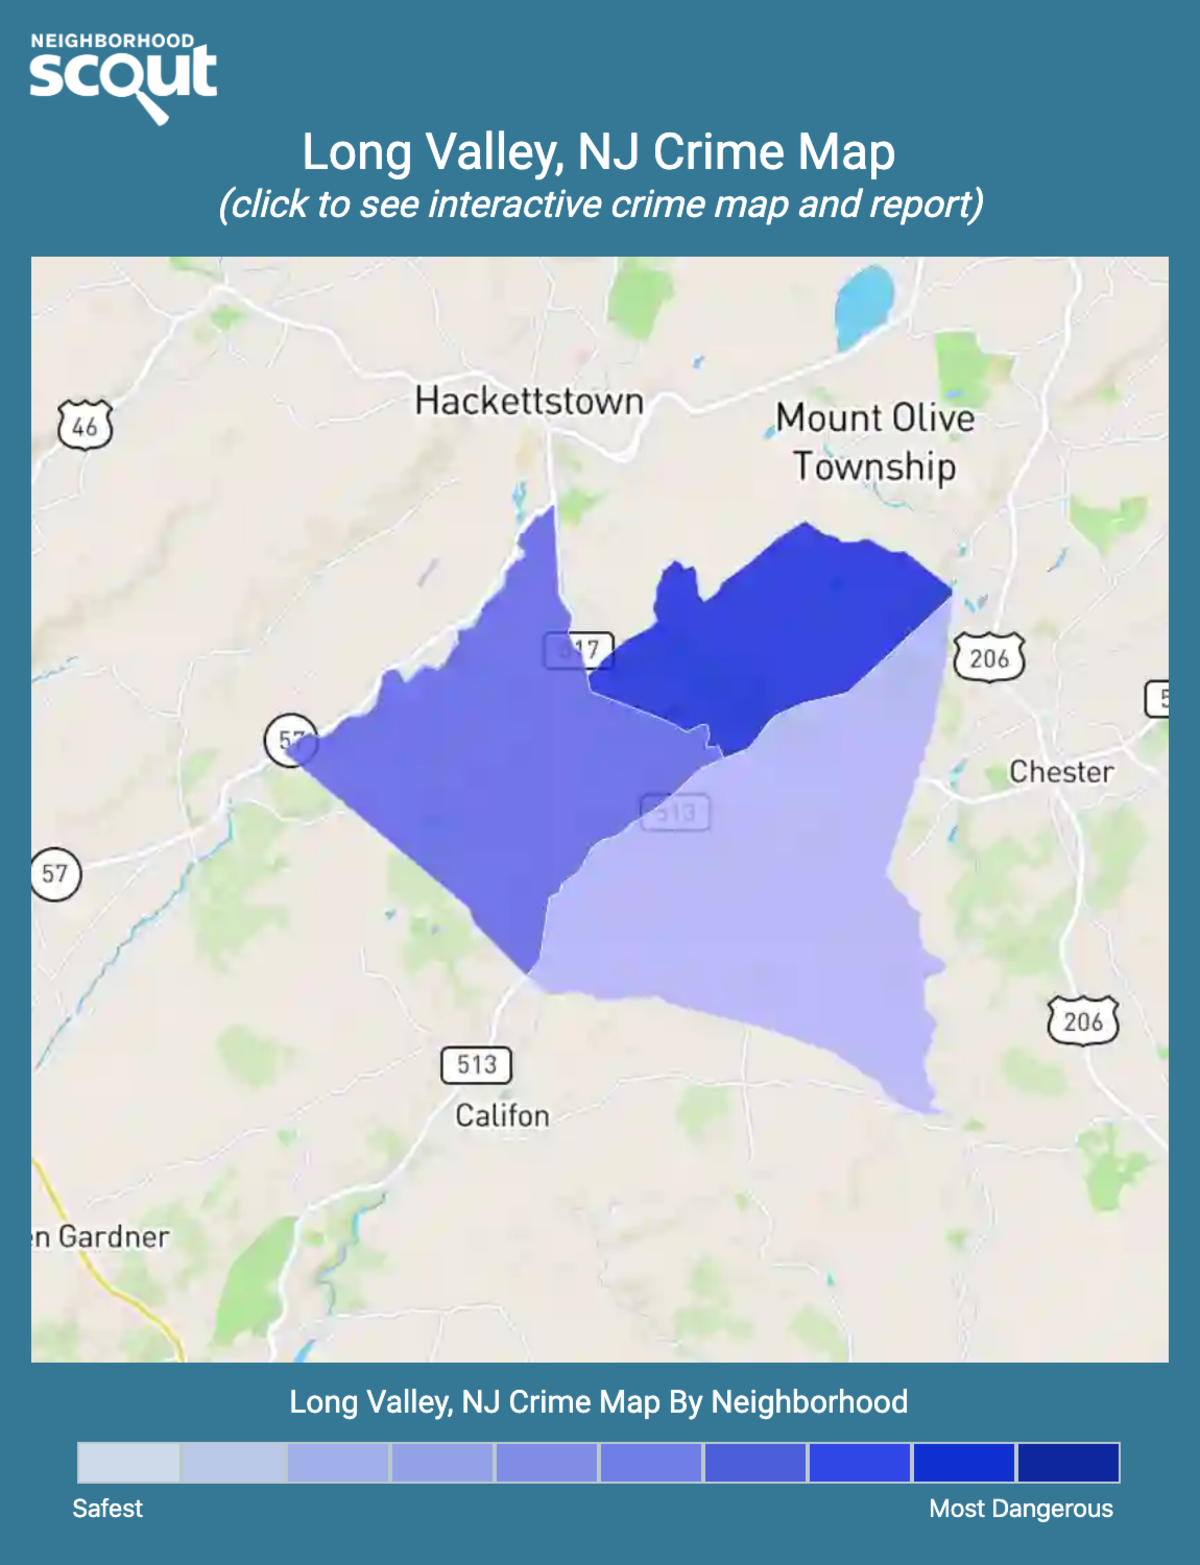 Long Valley, New Jersey crime map